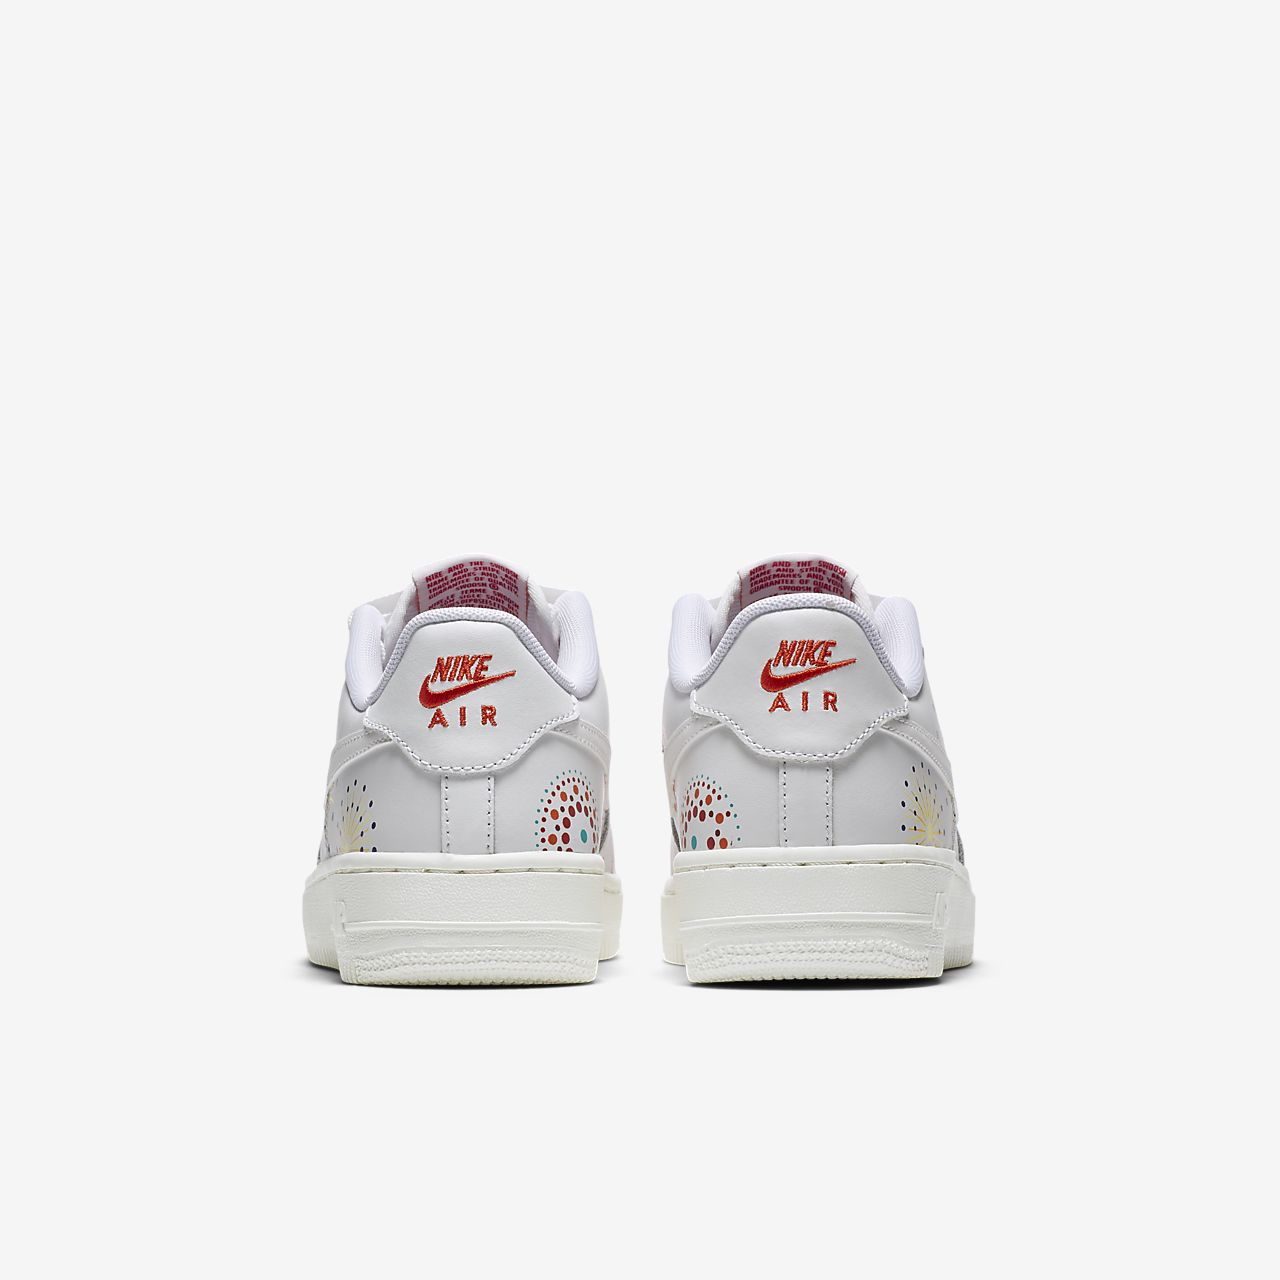 dfdce9b0 Calzado para niños talla grande Nike Air Force 1 Pinnacle QS. Nike ...